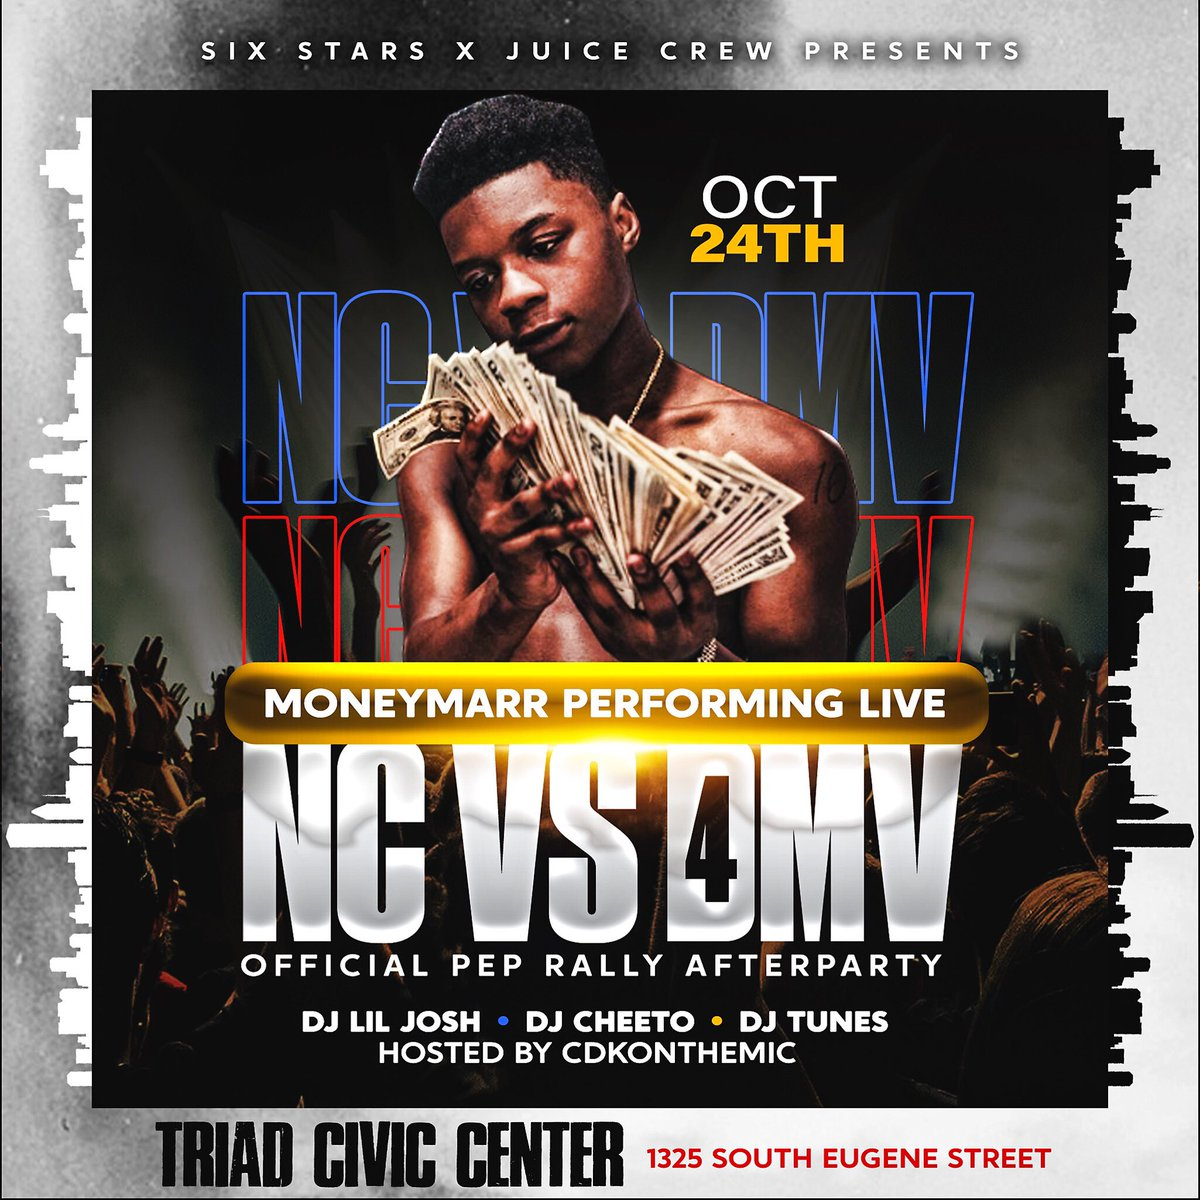 BIGGEST PEP RALLY  AFTERPARTY EVER  Six Stars Presents...  NC VS DMV 4  Shuttles PROVIDED  Moneymarr from the DMV representing the DMV   Who will represent NC?   RT help a college DMV student   #ncat #uncg   http:// Sixstarsent.com/events     <br>http://pic.twitter.com/QNqMUic4O6